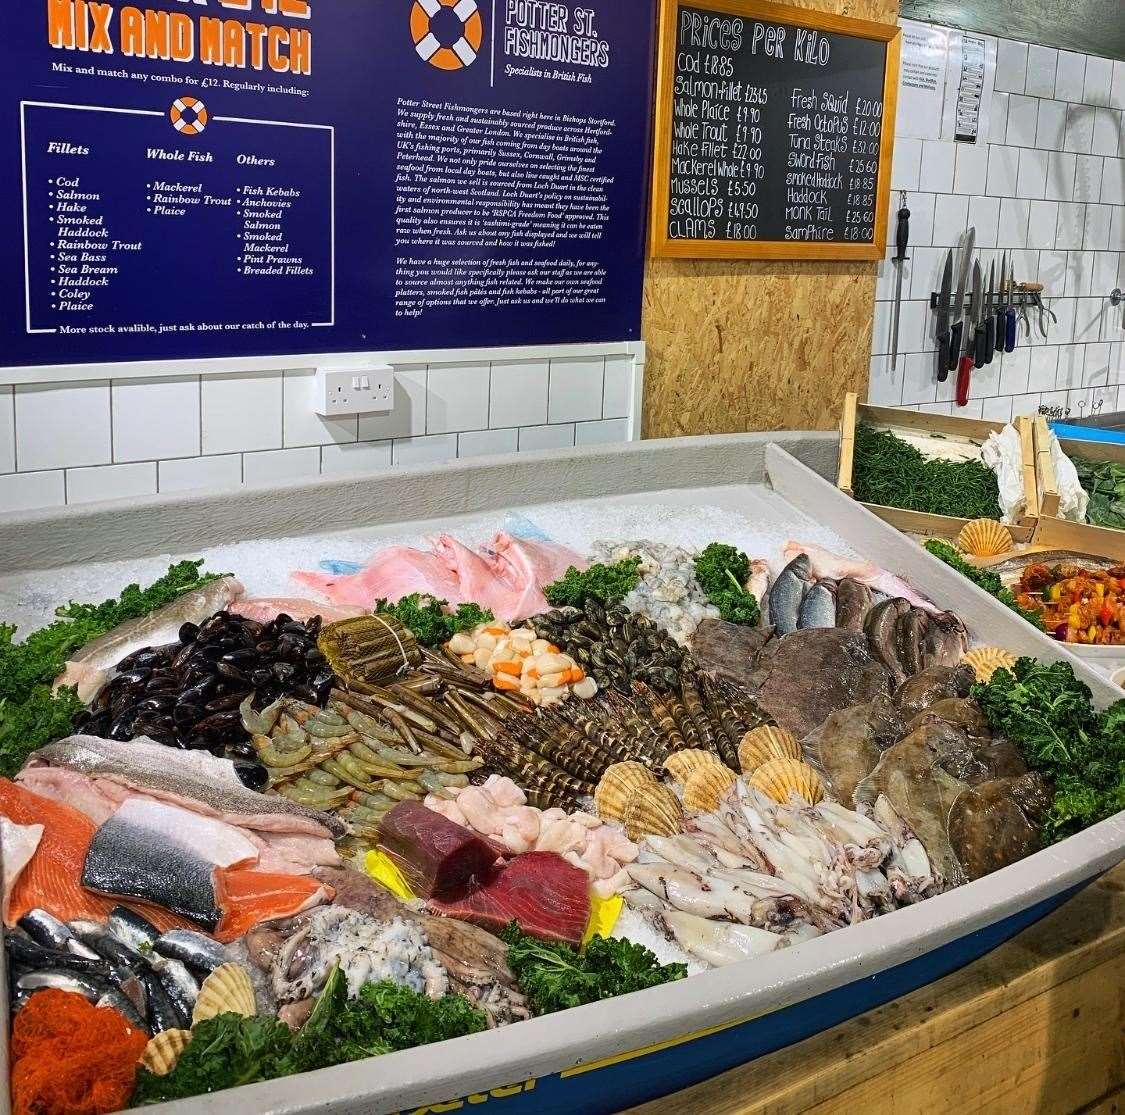 The varied selection of fresh fish available from Potter Street Fishmongers in Eat 17 (32212247)